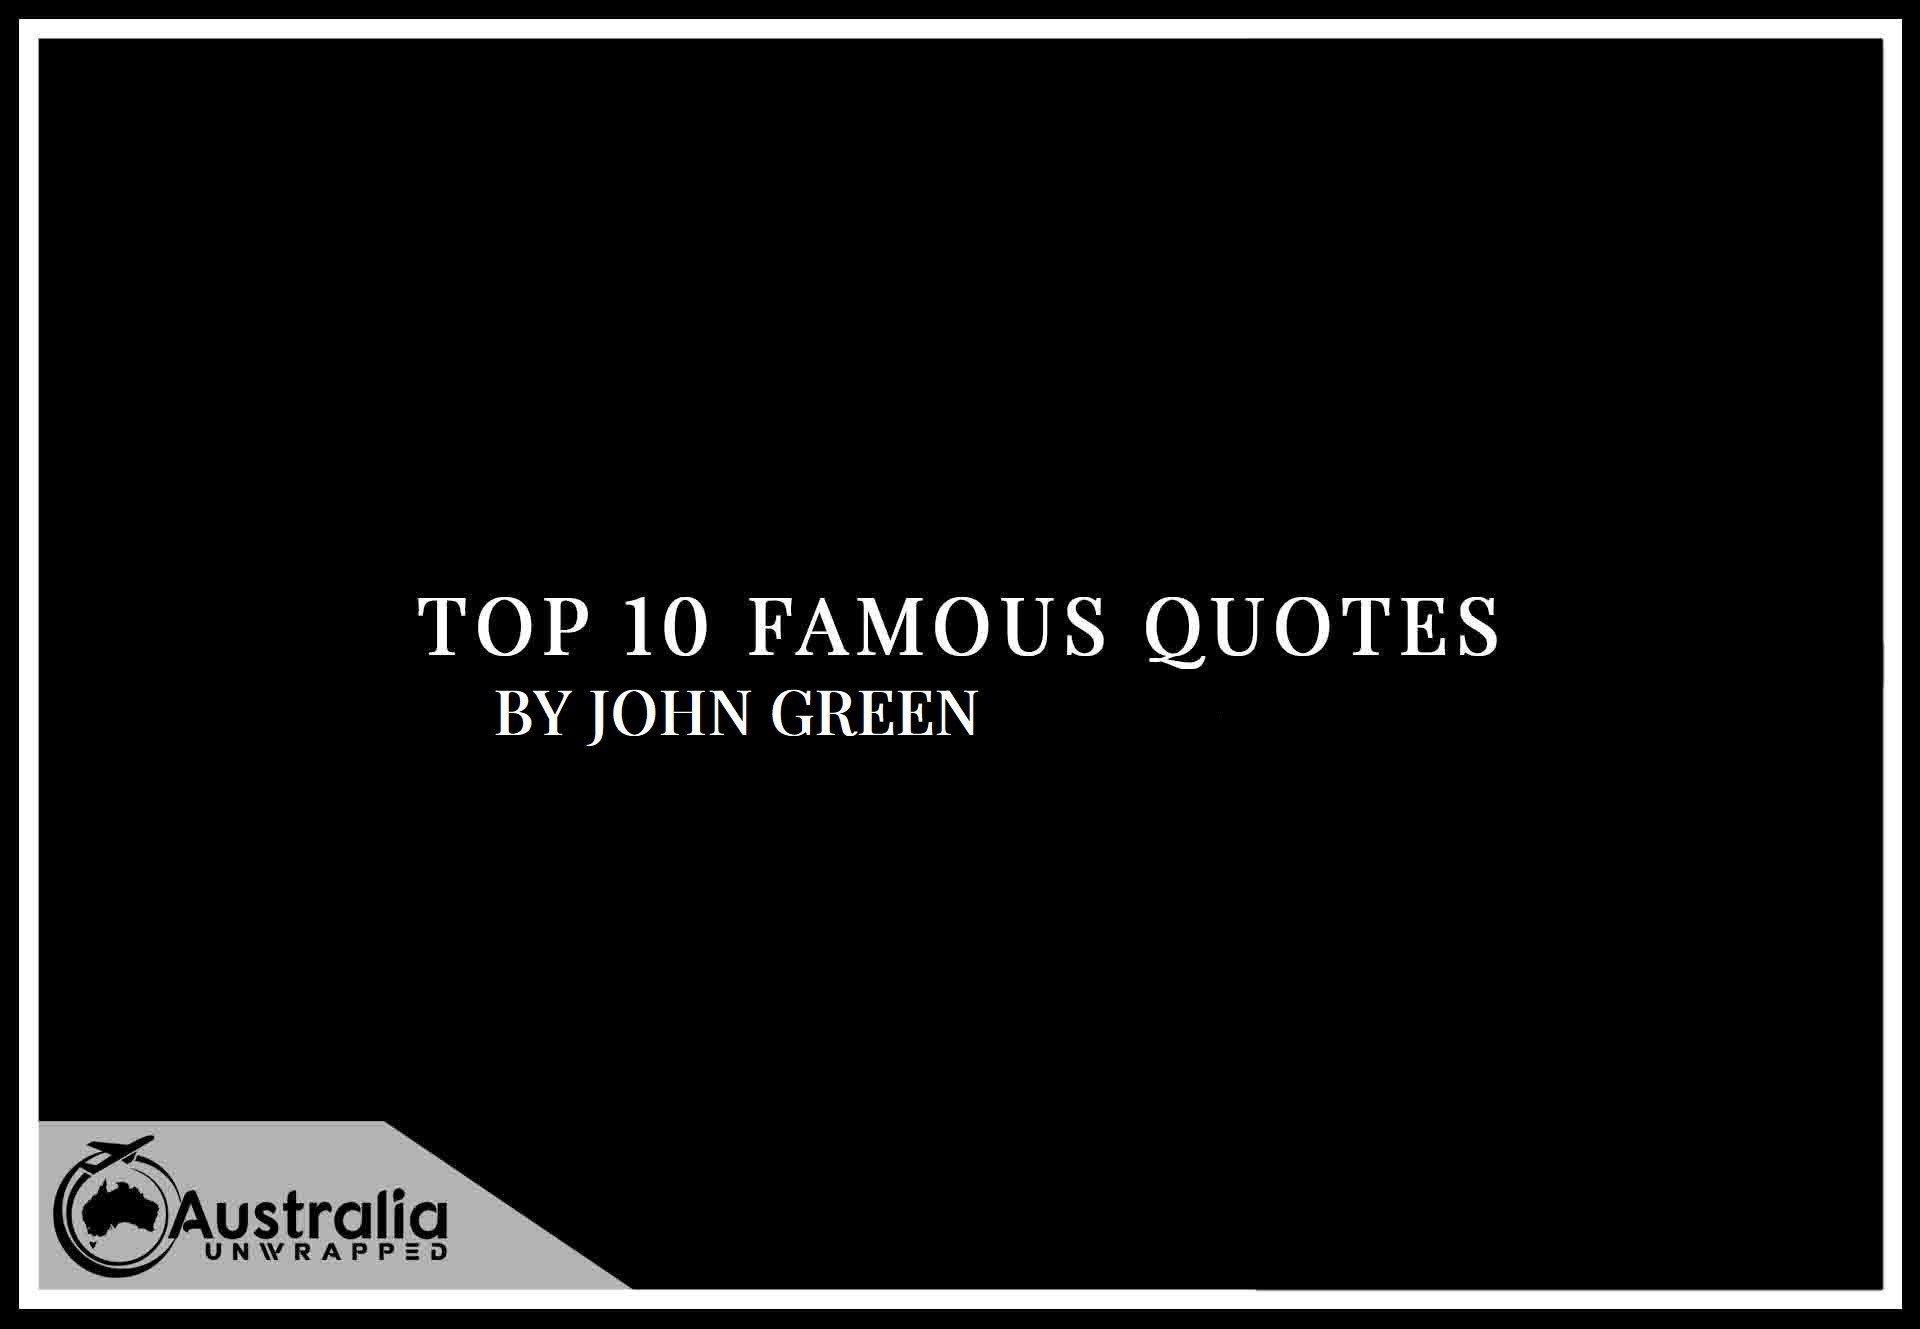 Top 10 Famous Quotes by Author John Green